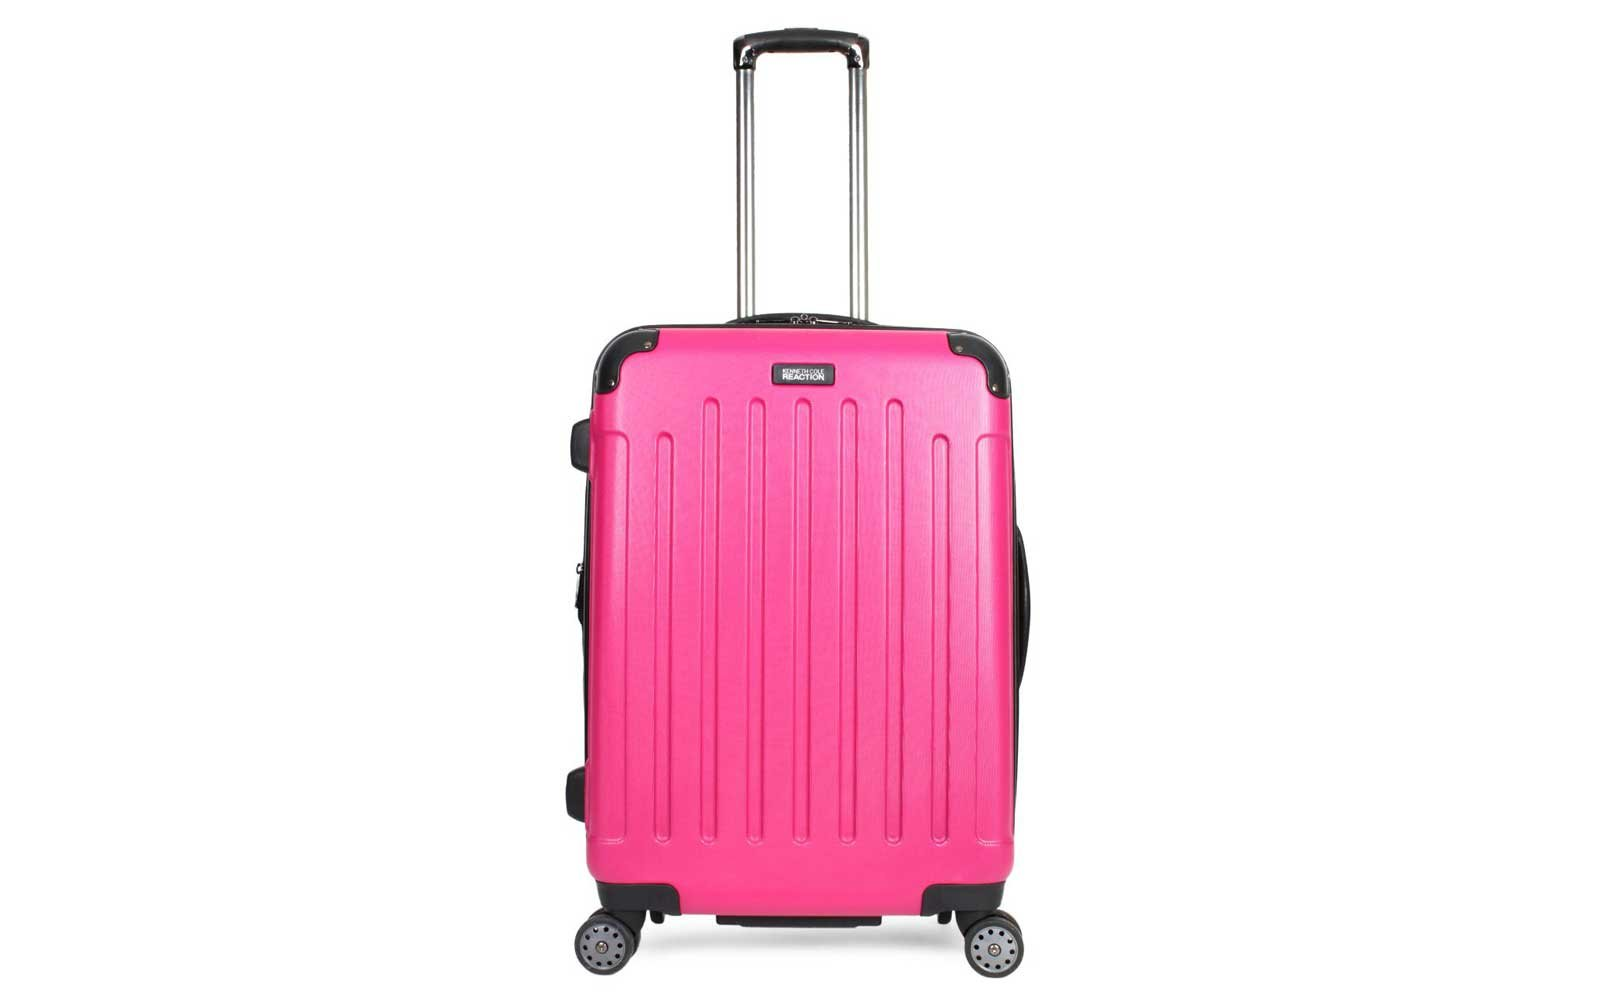 Kenneth Cole Reaction 8-wheel Spinner Trolley bag in magenta